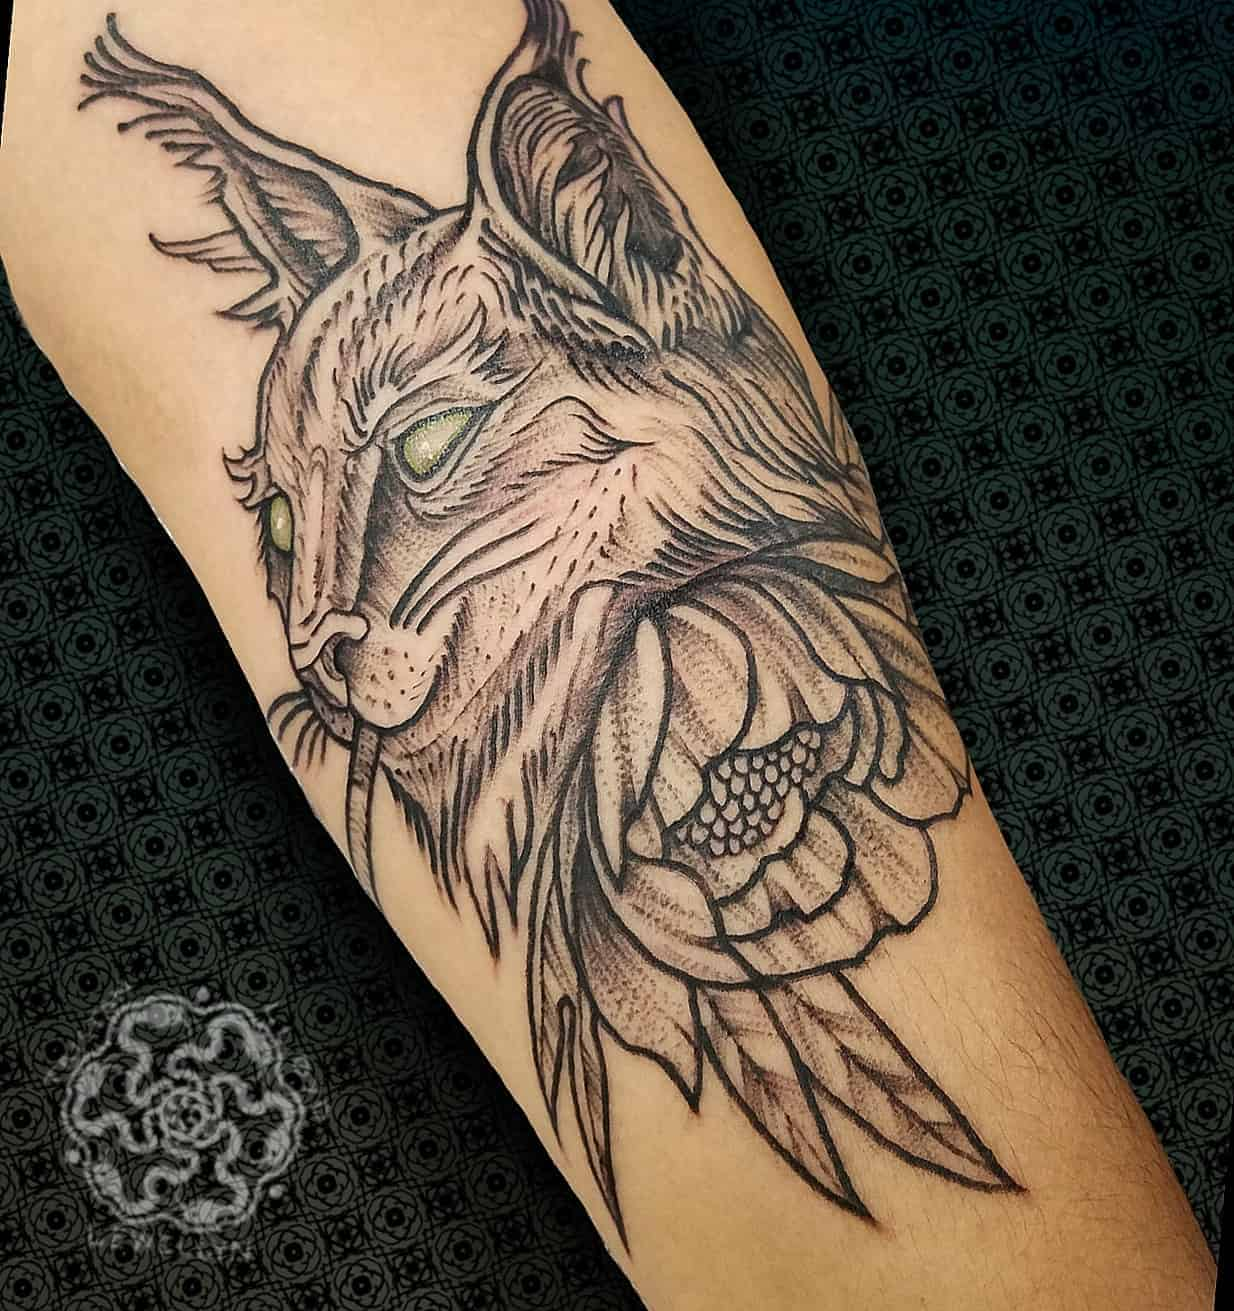 blackwork tattoo of a cat and flower on a forearm